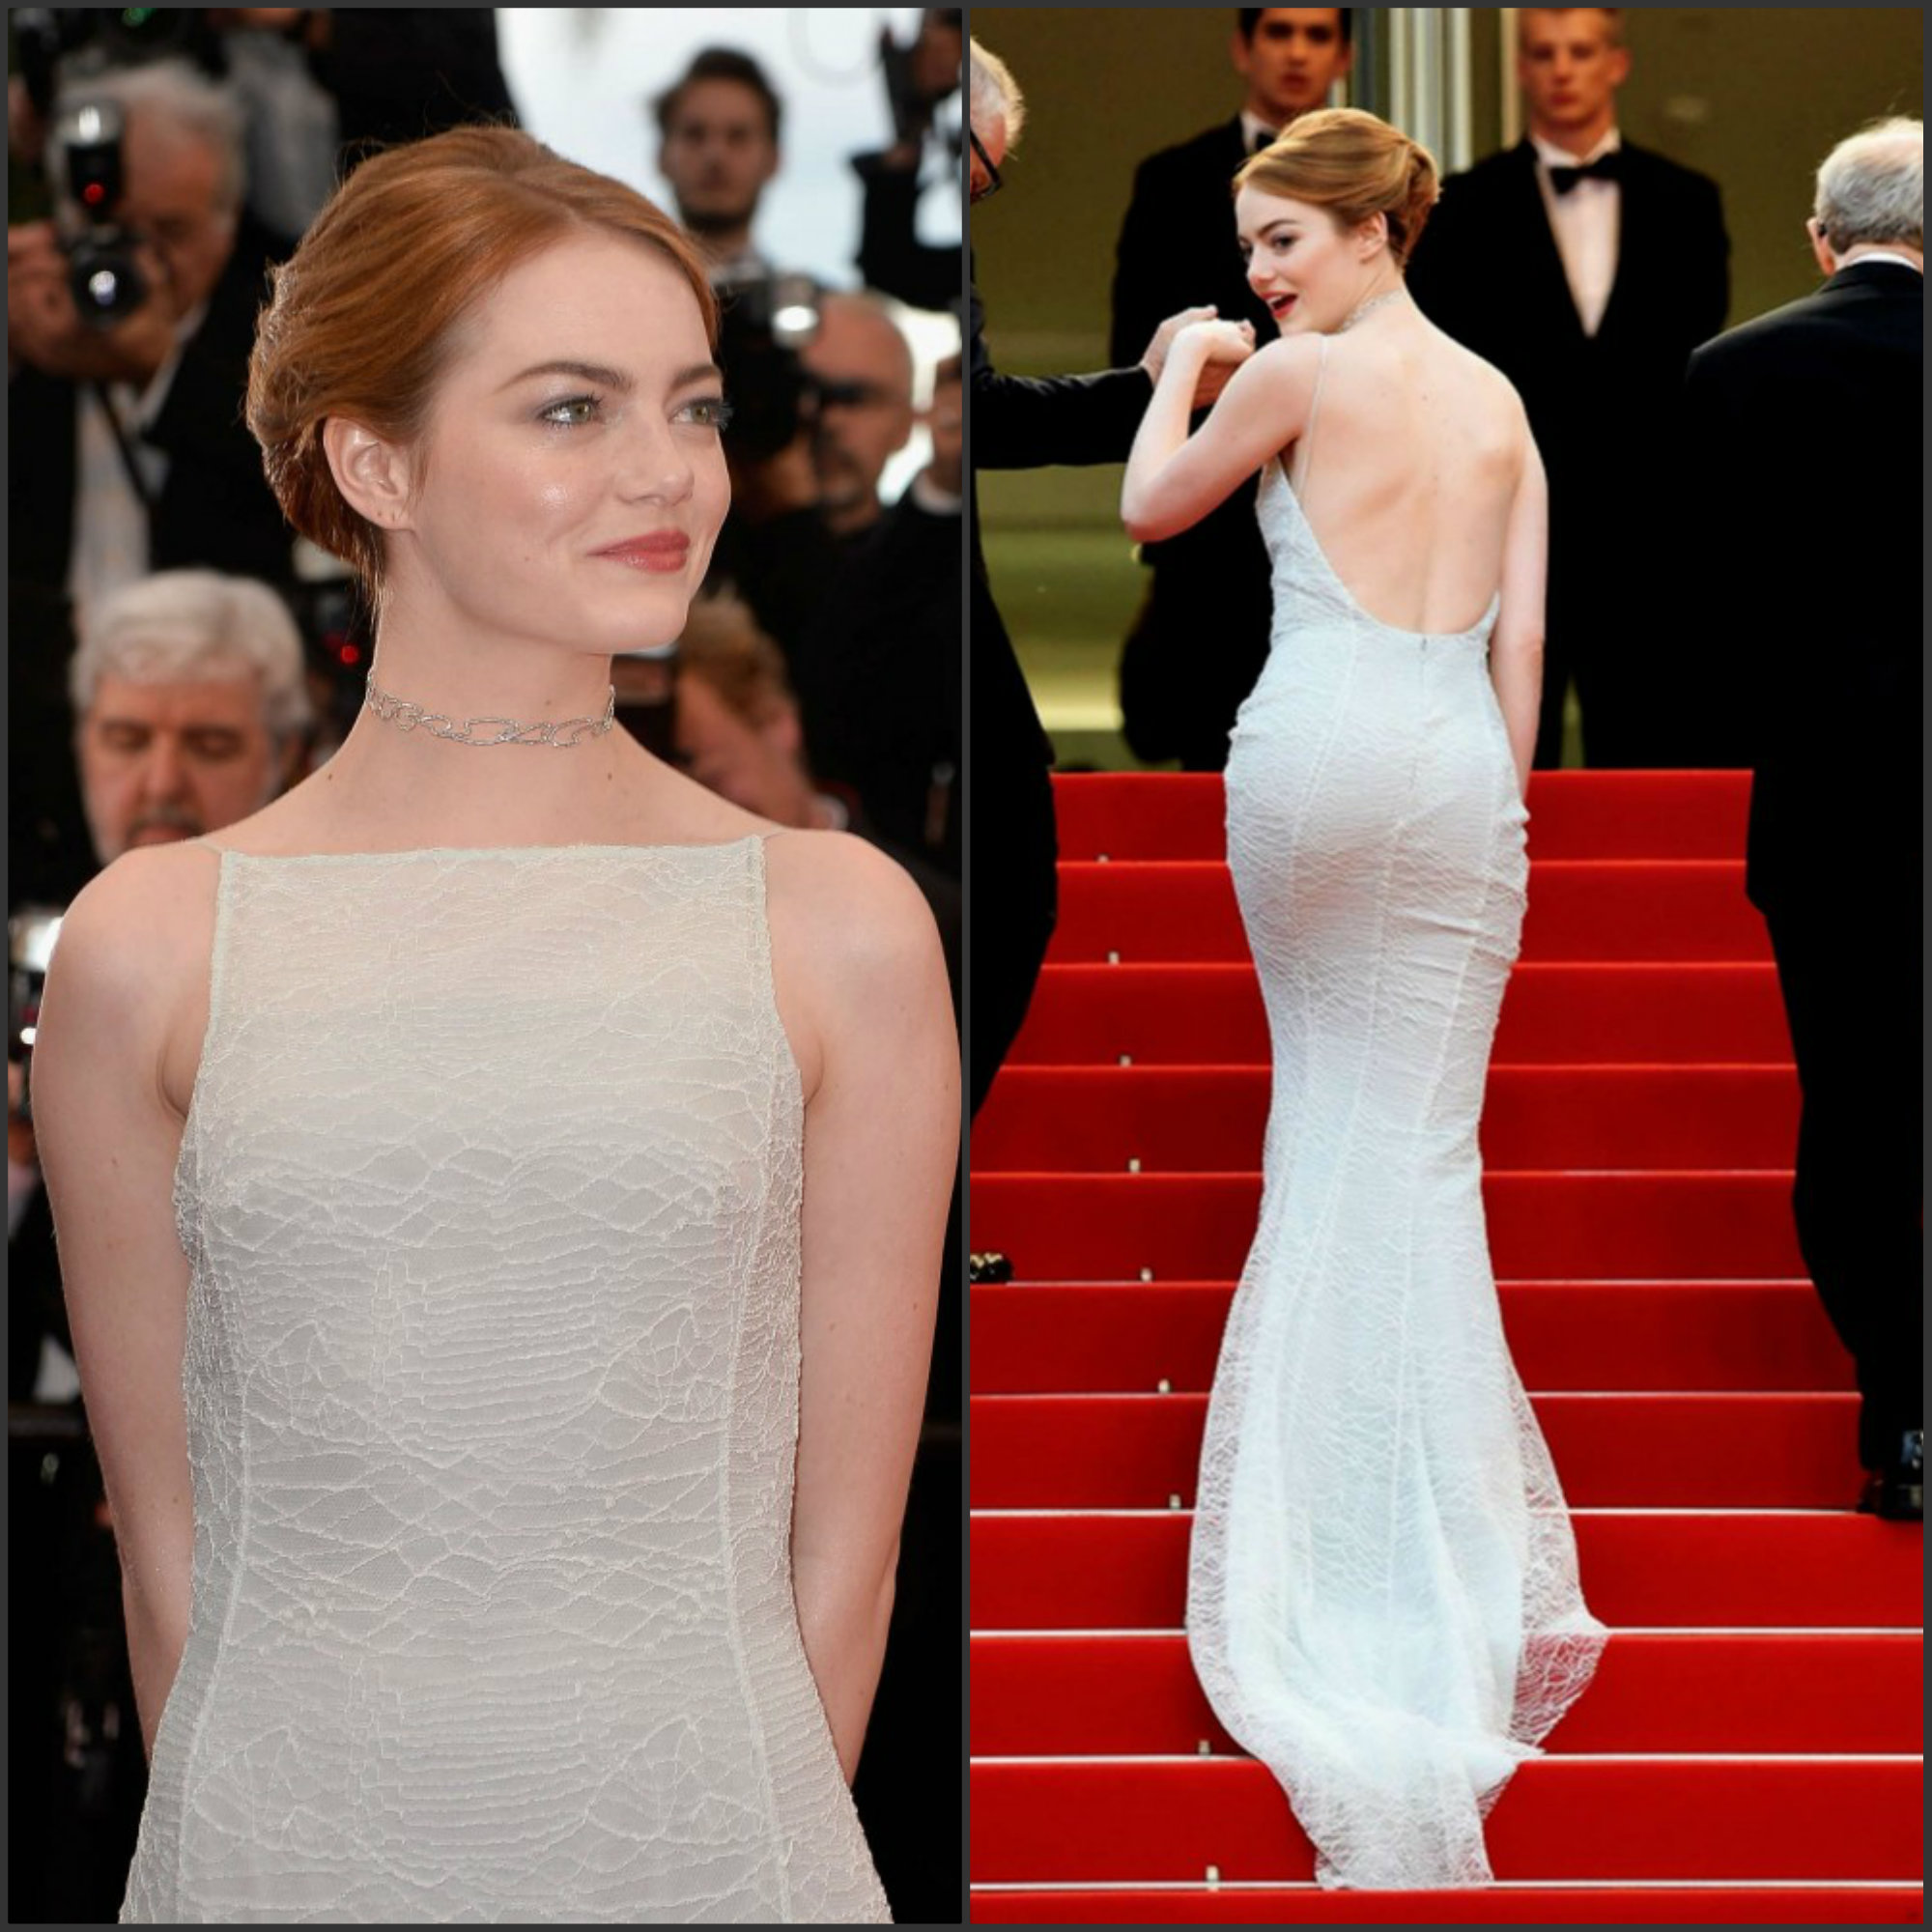 emma-stone-in-christian-dior-the-irrational-man-68th-cannes-film-festival-premiere